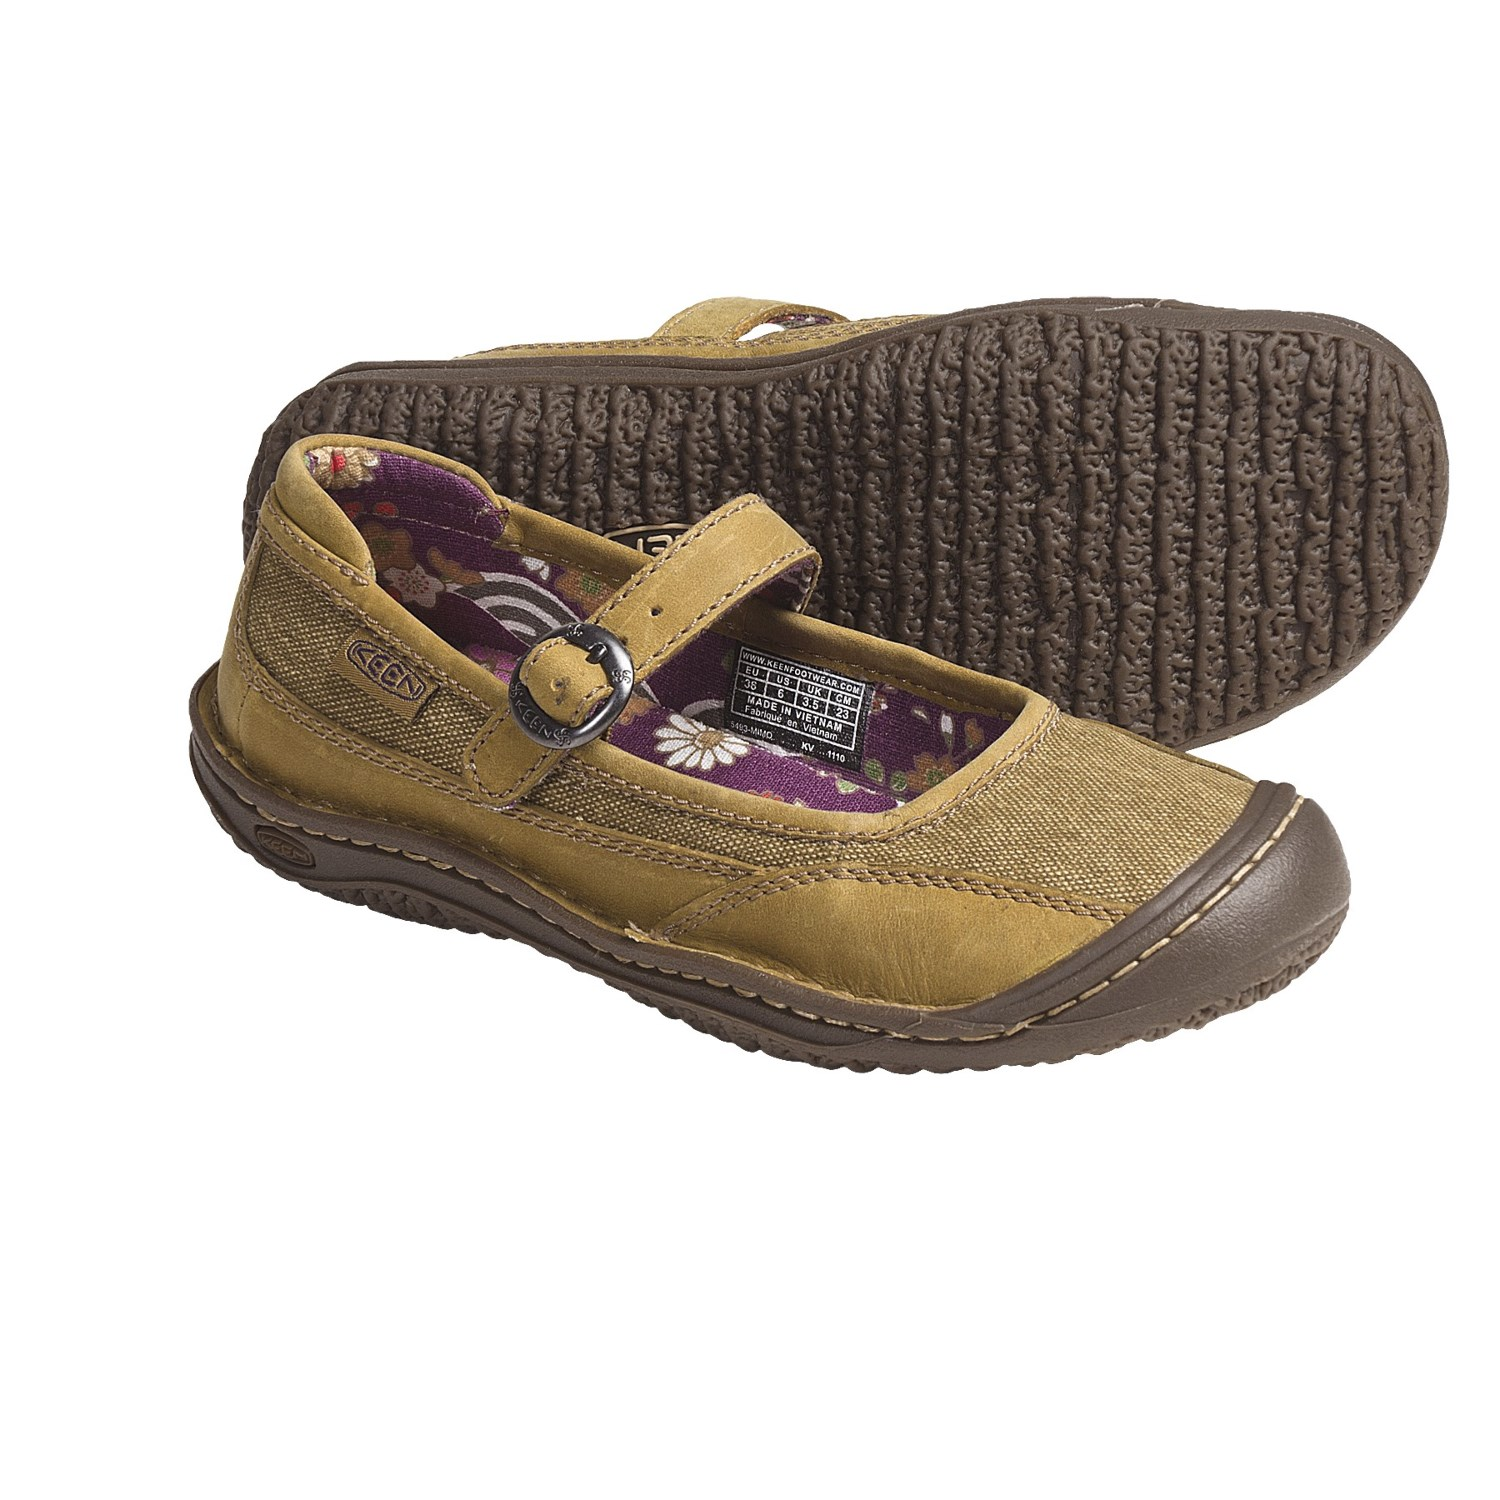 Keen Canvas Mary Jane Shoes Women